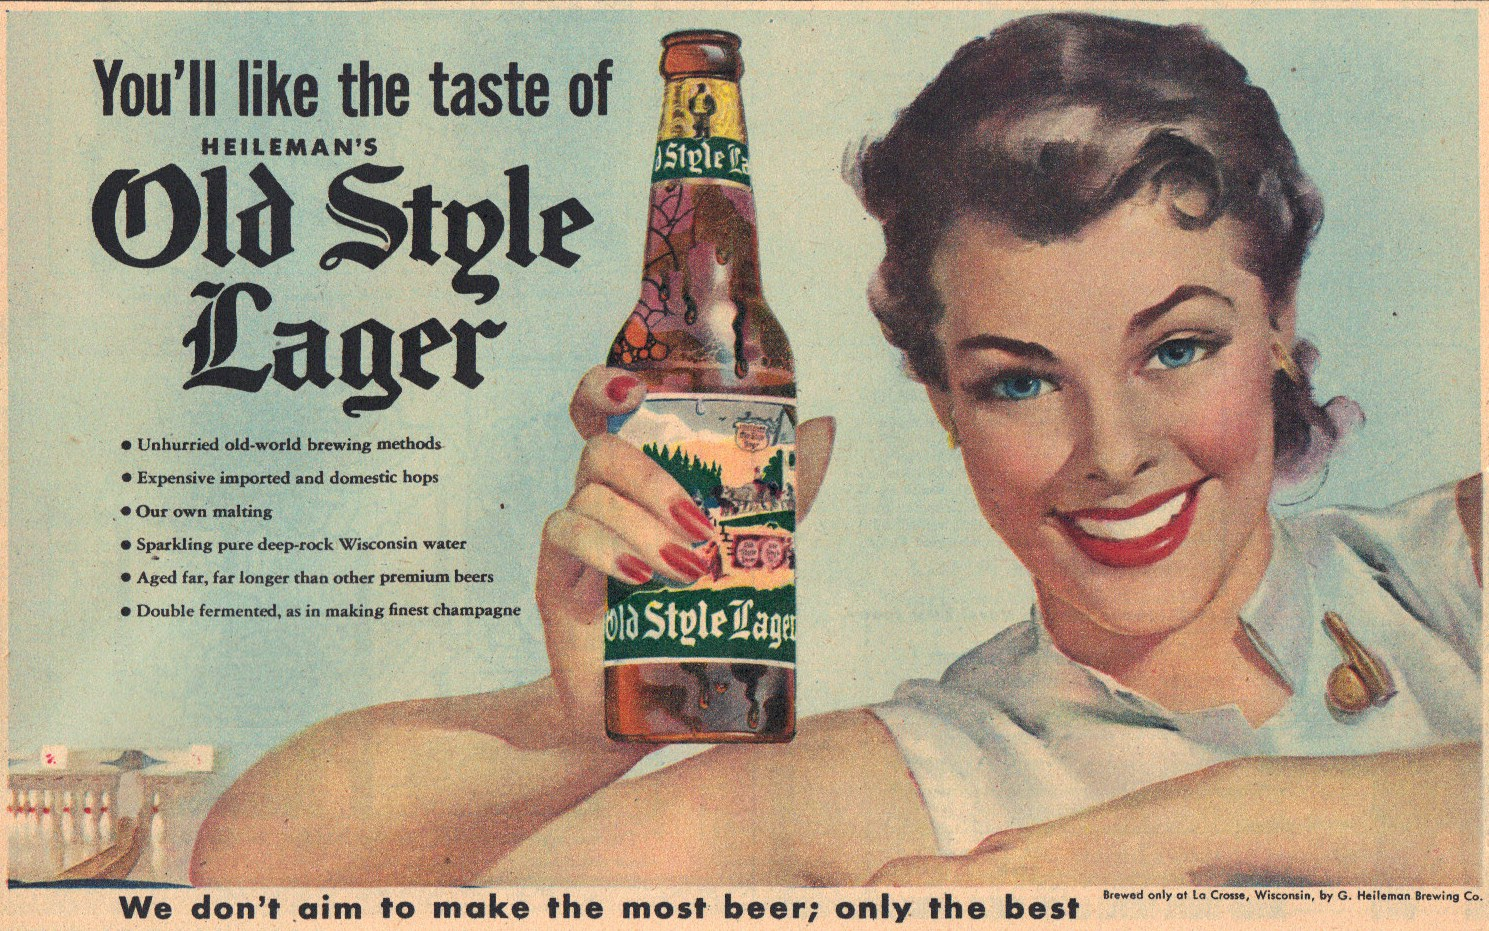 Sunday Adverts: Old Style Lager